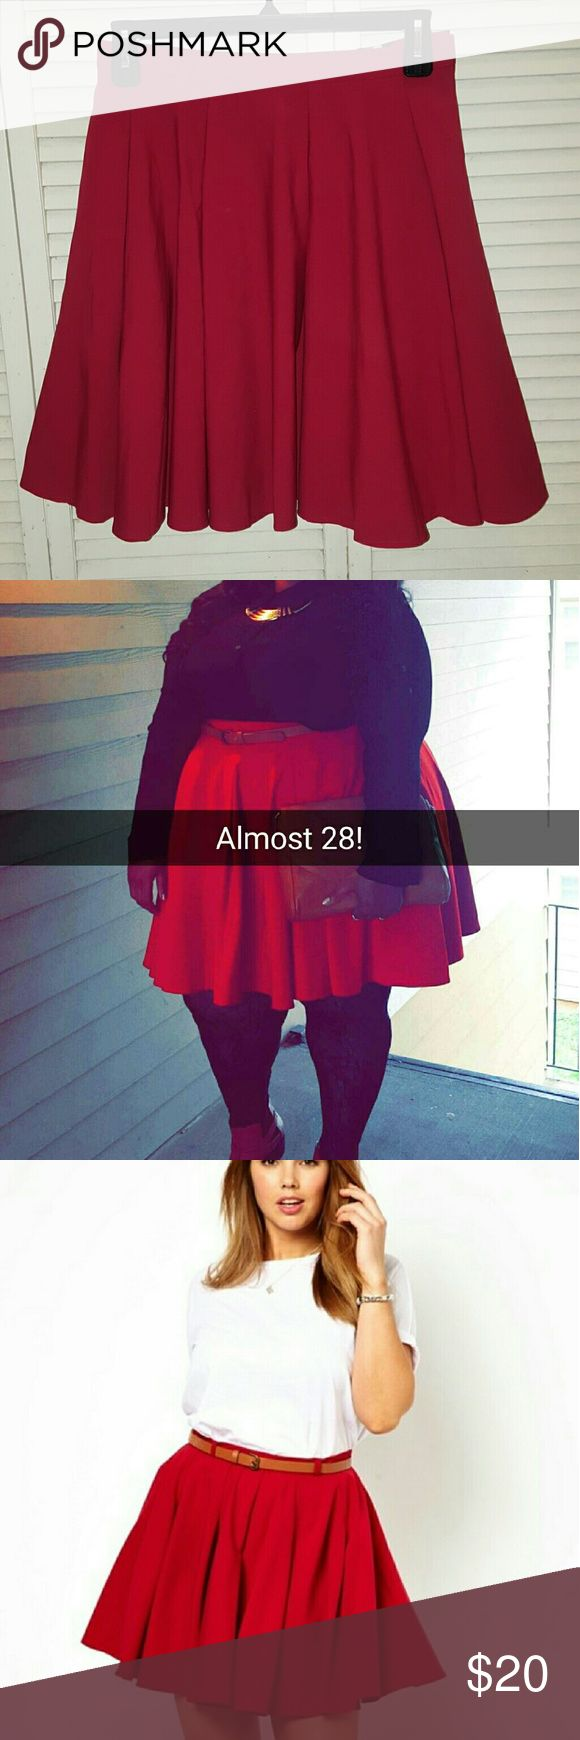 ASOS CURVE RED PLEATED SKIRT Red Pleated Skirt Size 22 *runs big in my opinion felt like a 26* 73% Polyester/21% Viscose/6% Elastane zipper/clasp-back of skirt no belt *worn once for birthday date.* ASOS Curve Skirts Circle & Skater